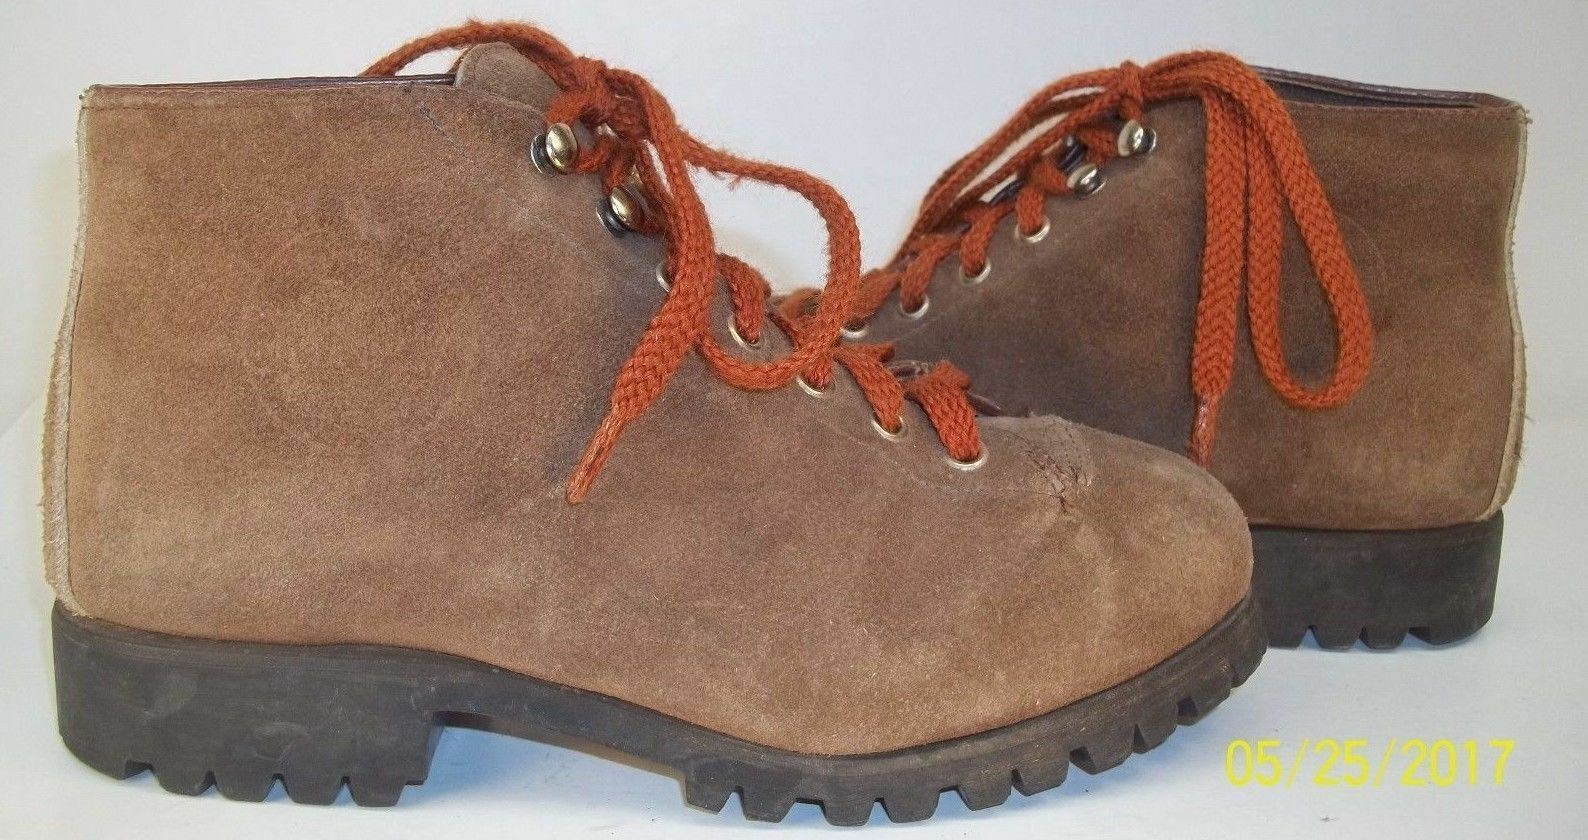 Donna Stivali   6.5 M Brown Up Suede Alpine Lace Up Brown Hiking Walking Ankle Work 2626 f21471